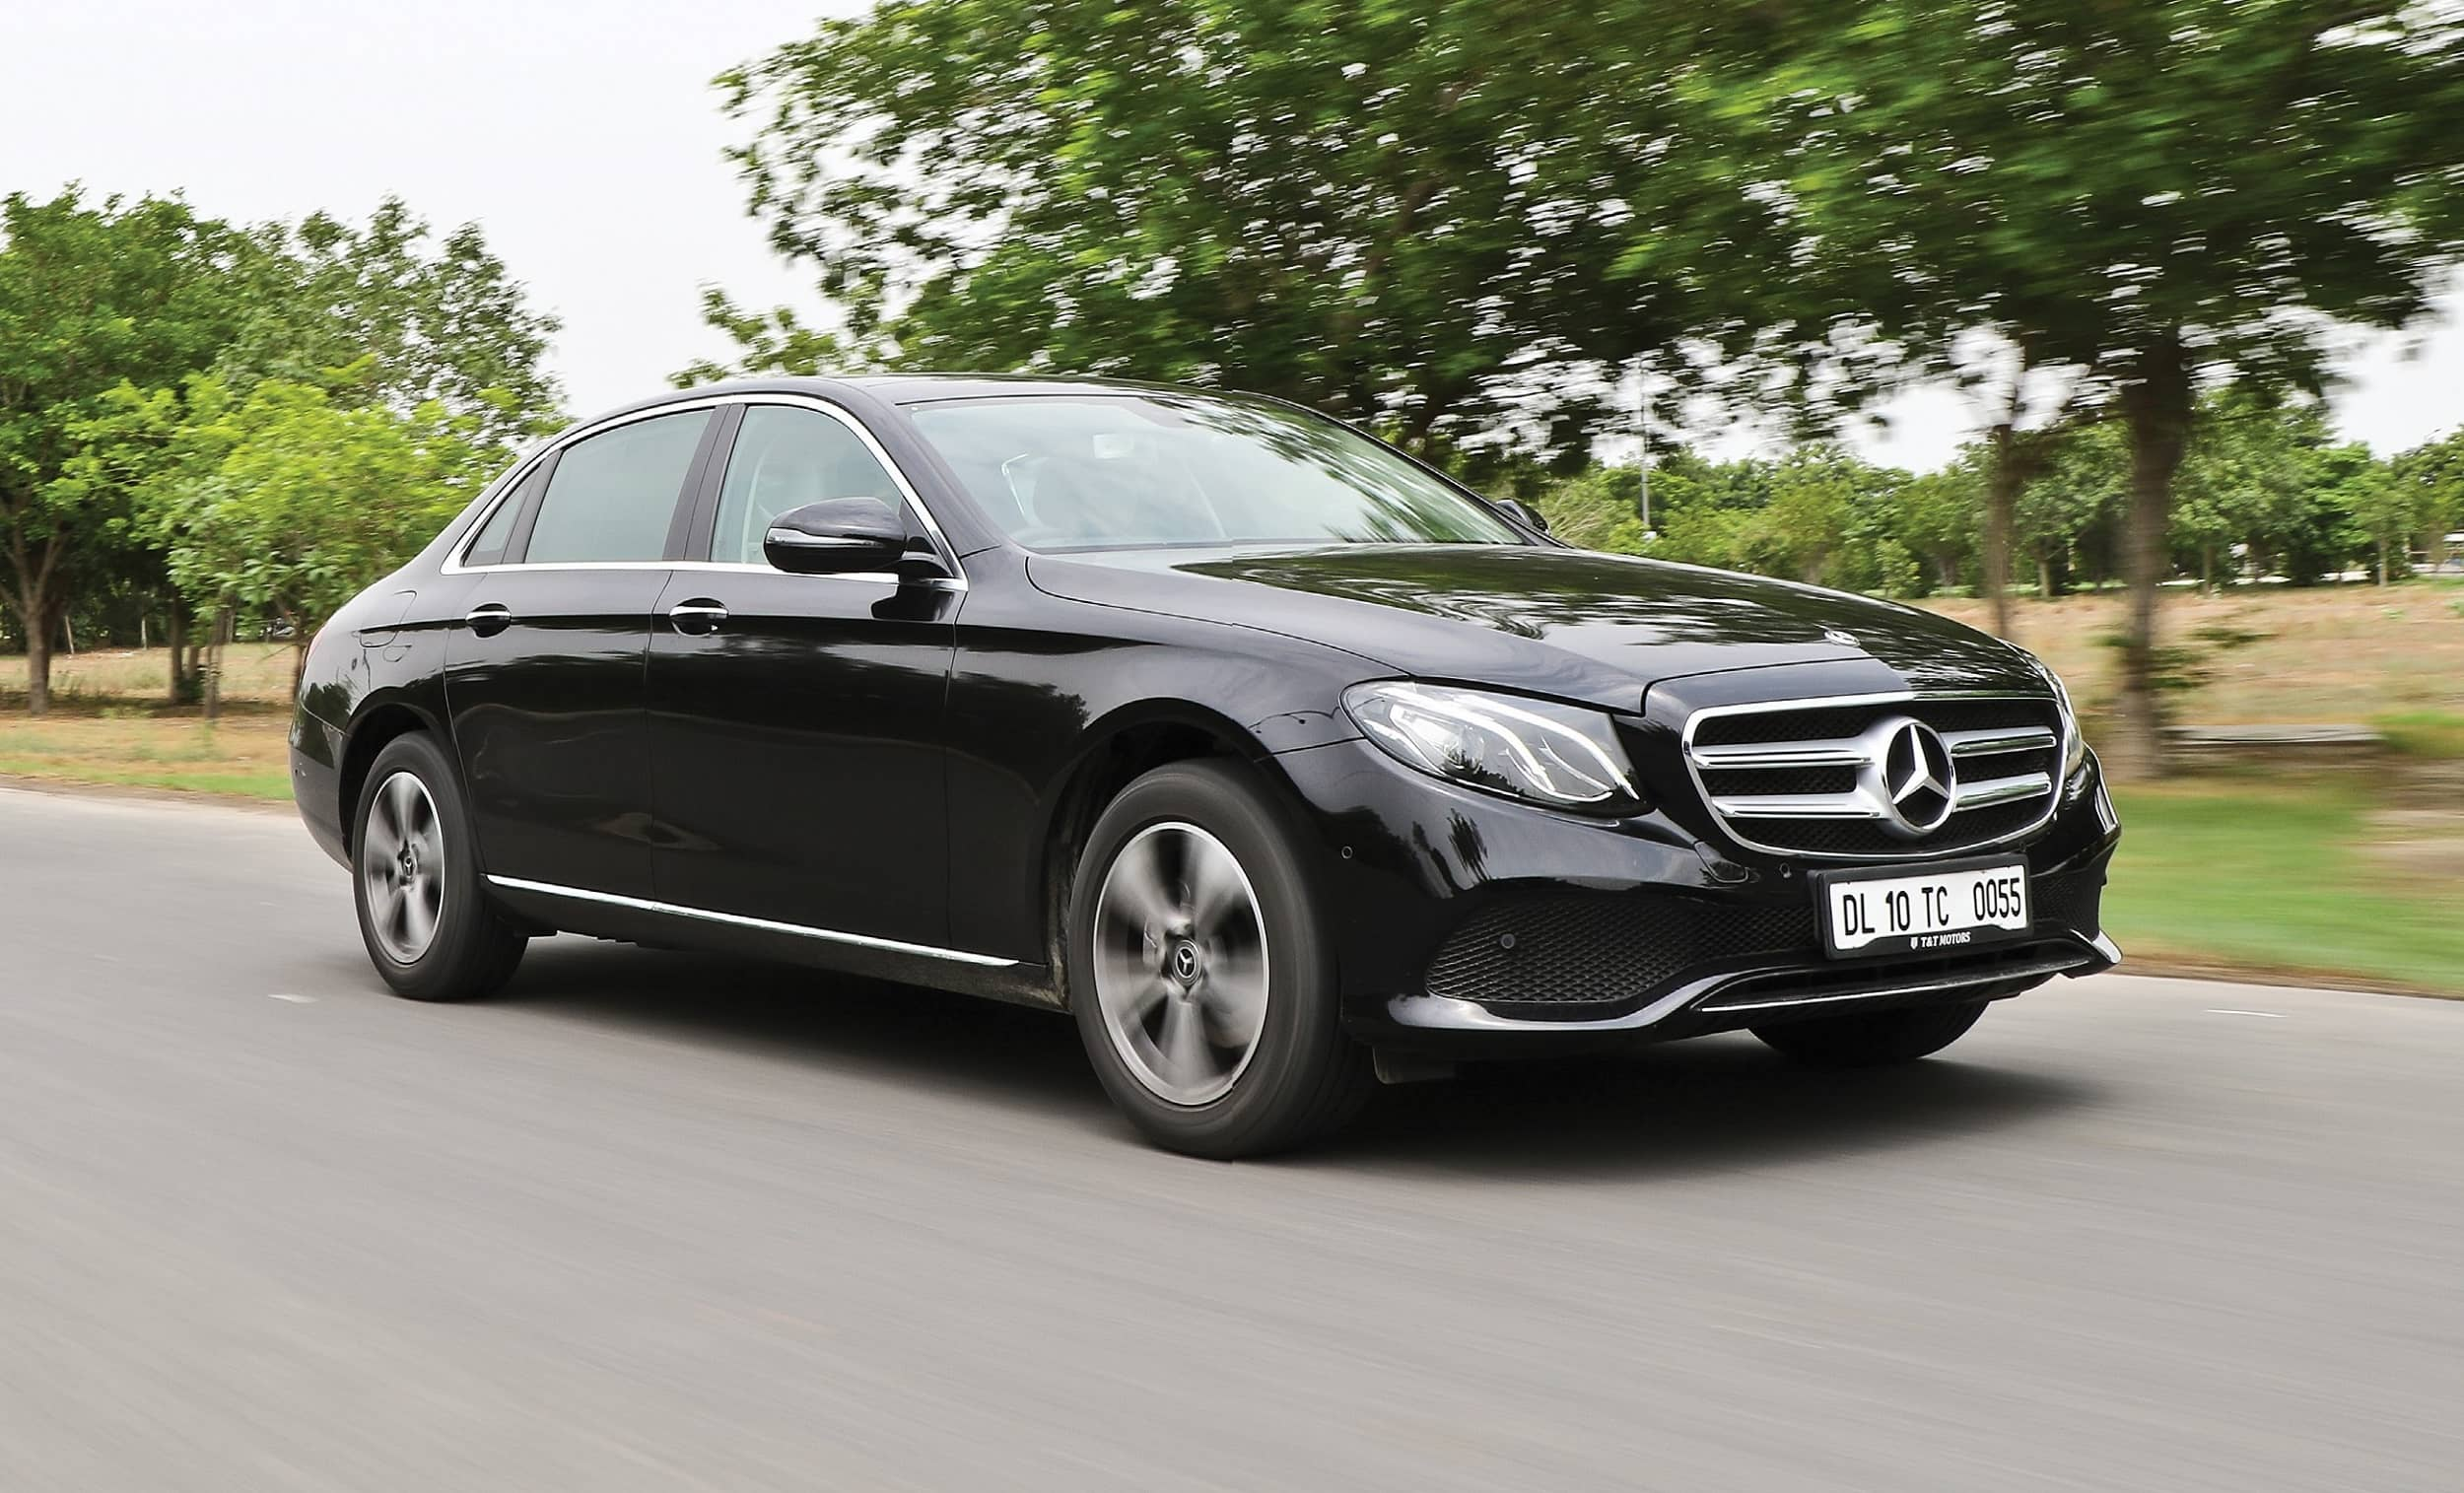 The Mercedes-Benz E-Class Gets A New BS-VI Compliant Diesel Engine